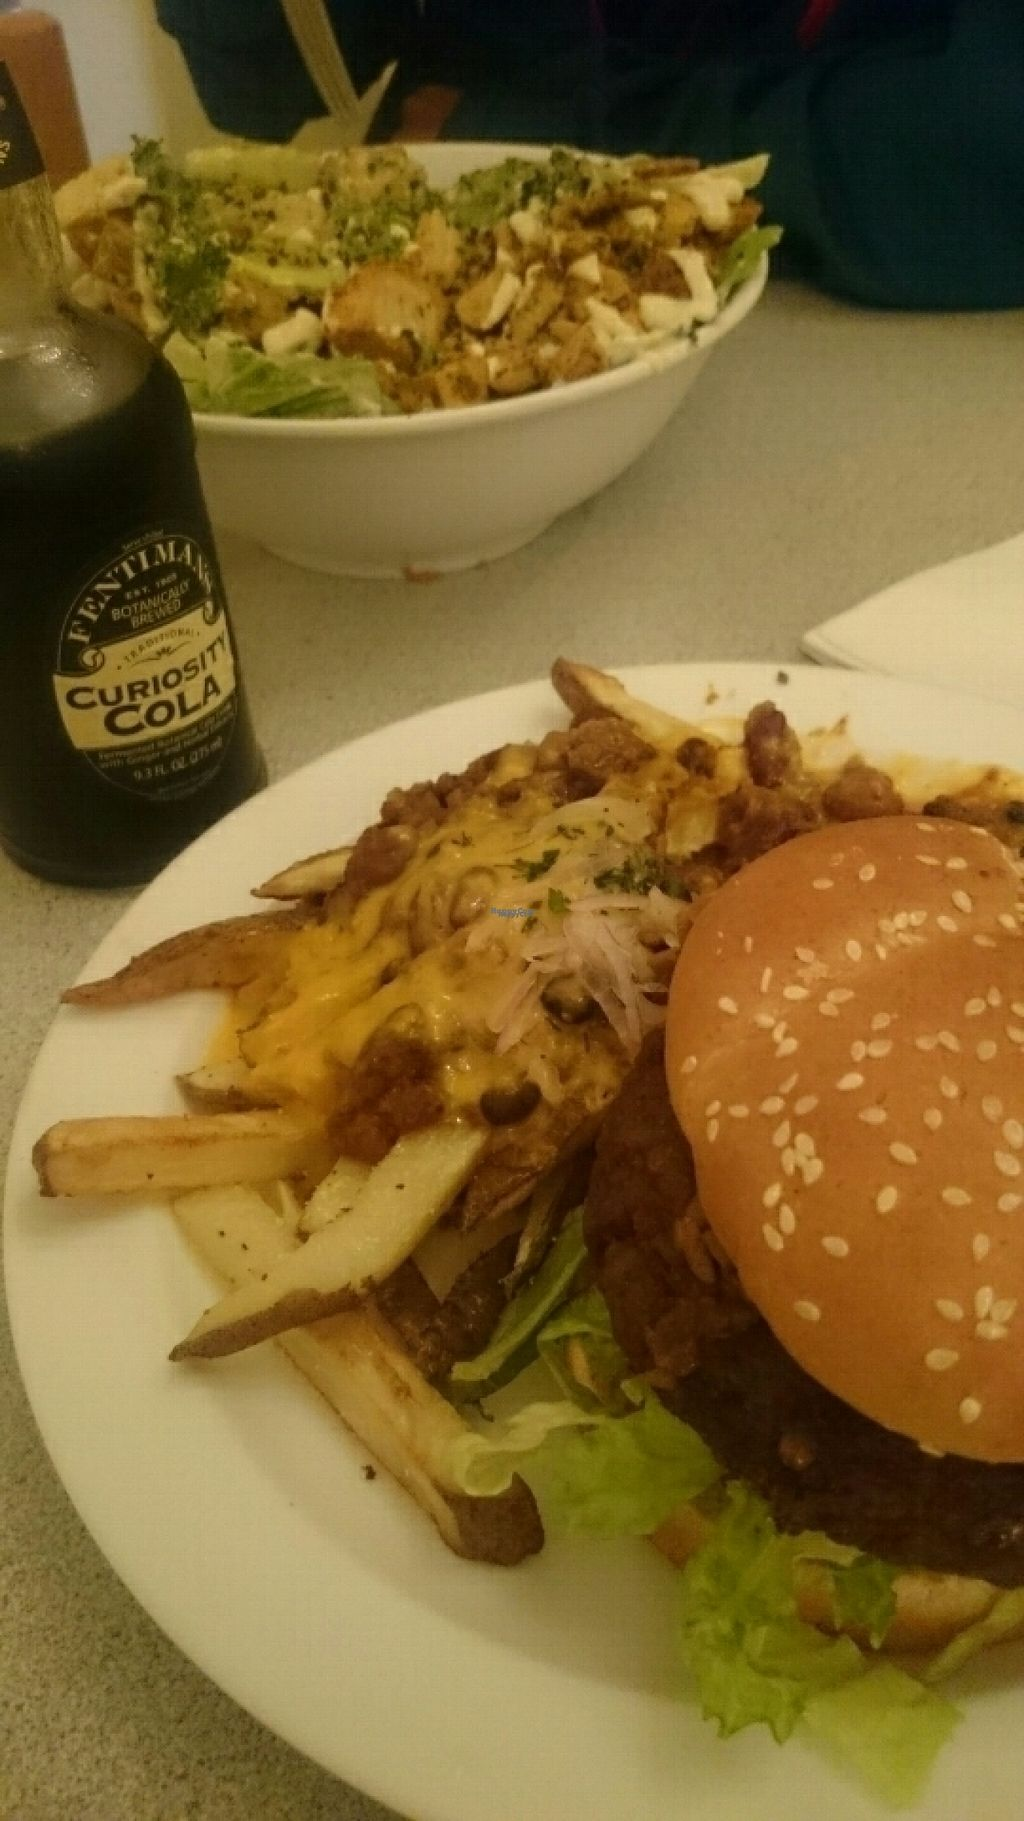 """Photo of CLOSED: Garden to Grill  by <a href=""""/members/profile/jarik"""">jarik</a> <br/>burger, which was served cold, with sub cheese fries and kale salad <br/> October 30, 2016  - <a href='/contact/abuse/image/20181/185437'>Report</a>"""